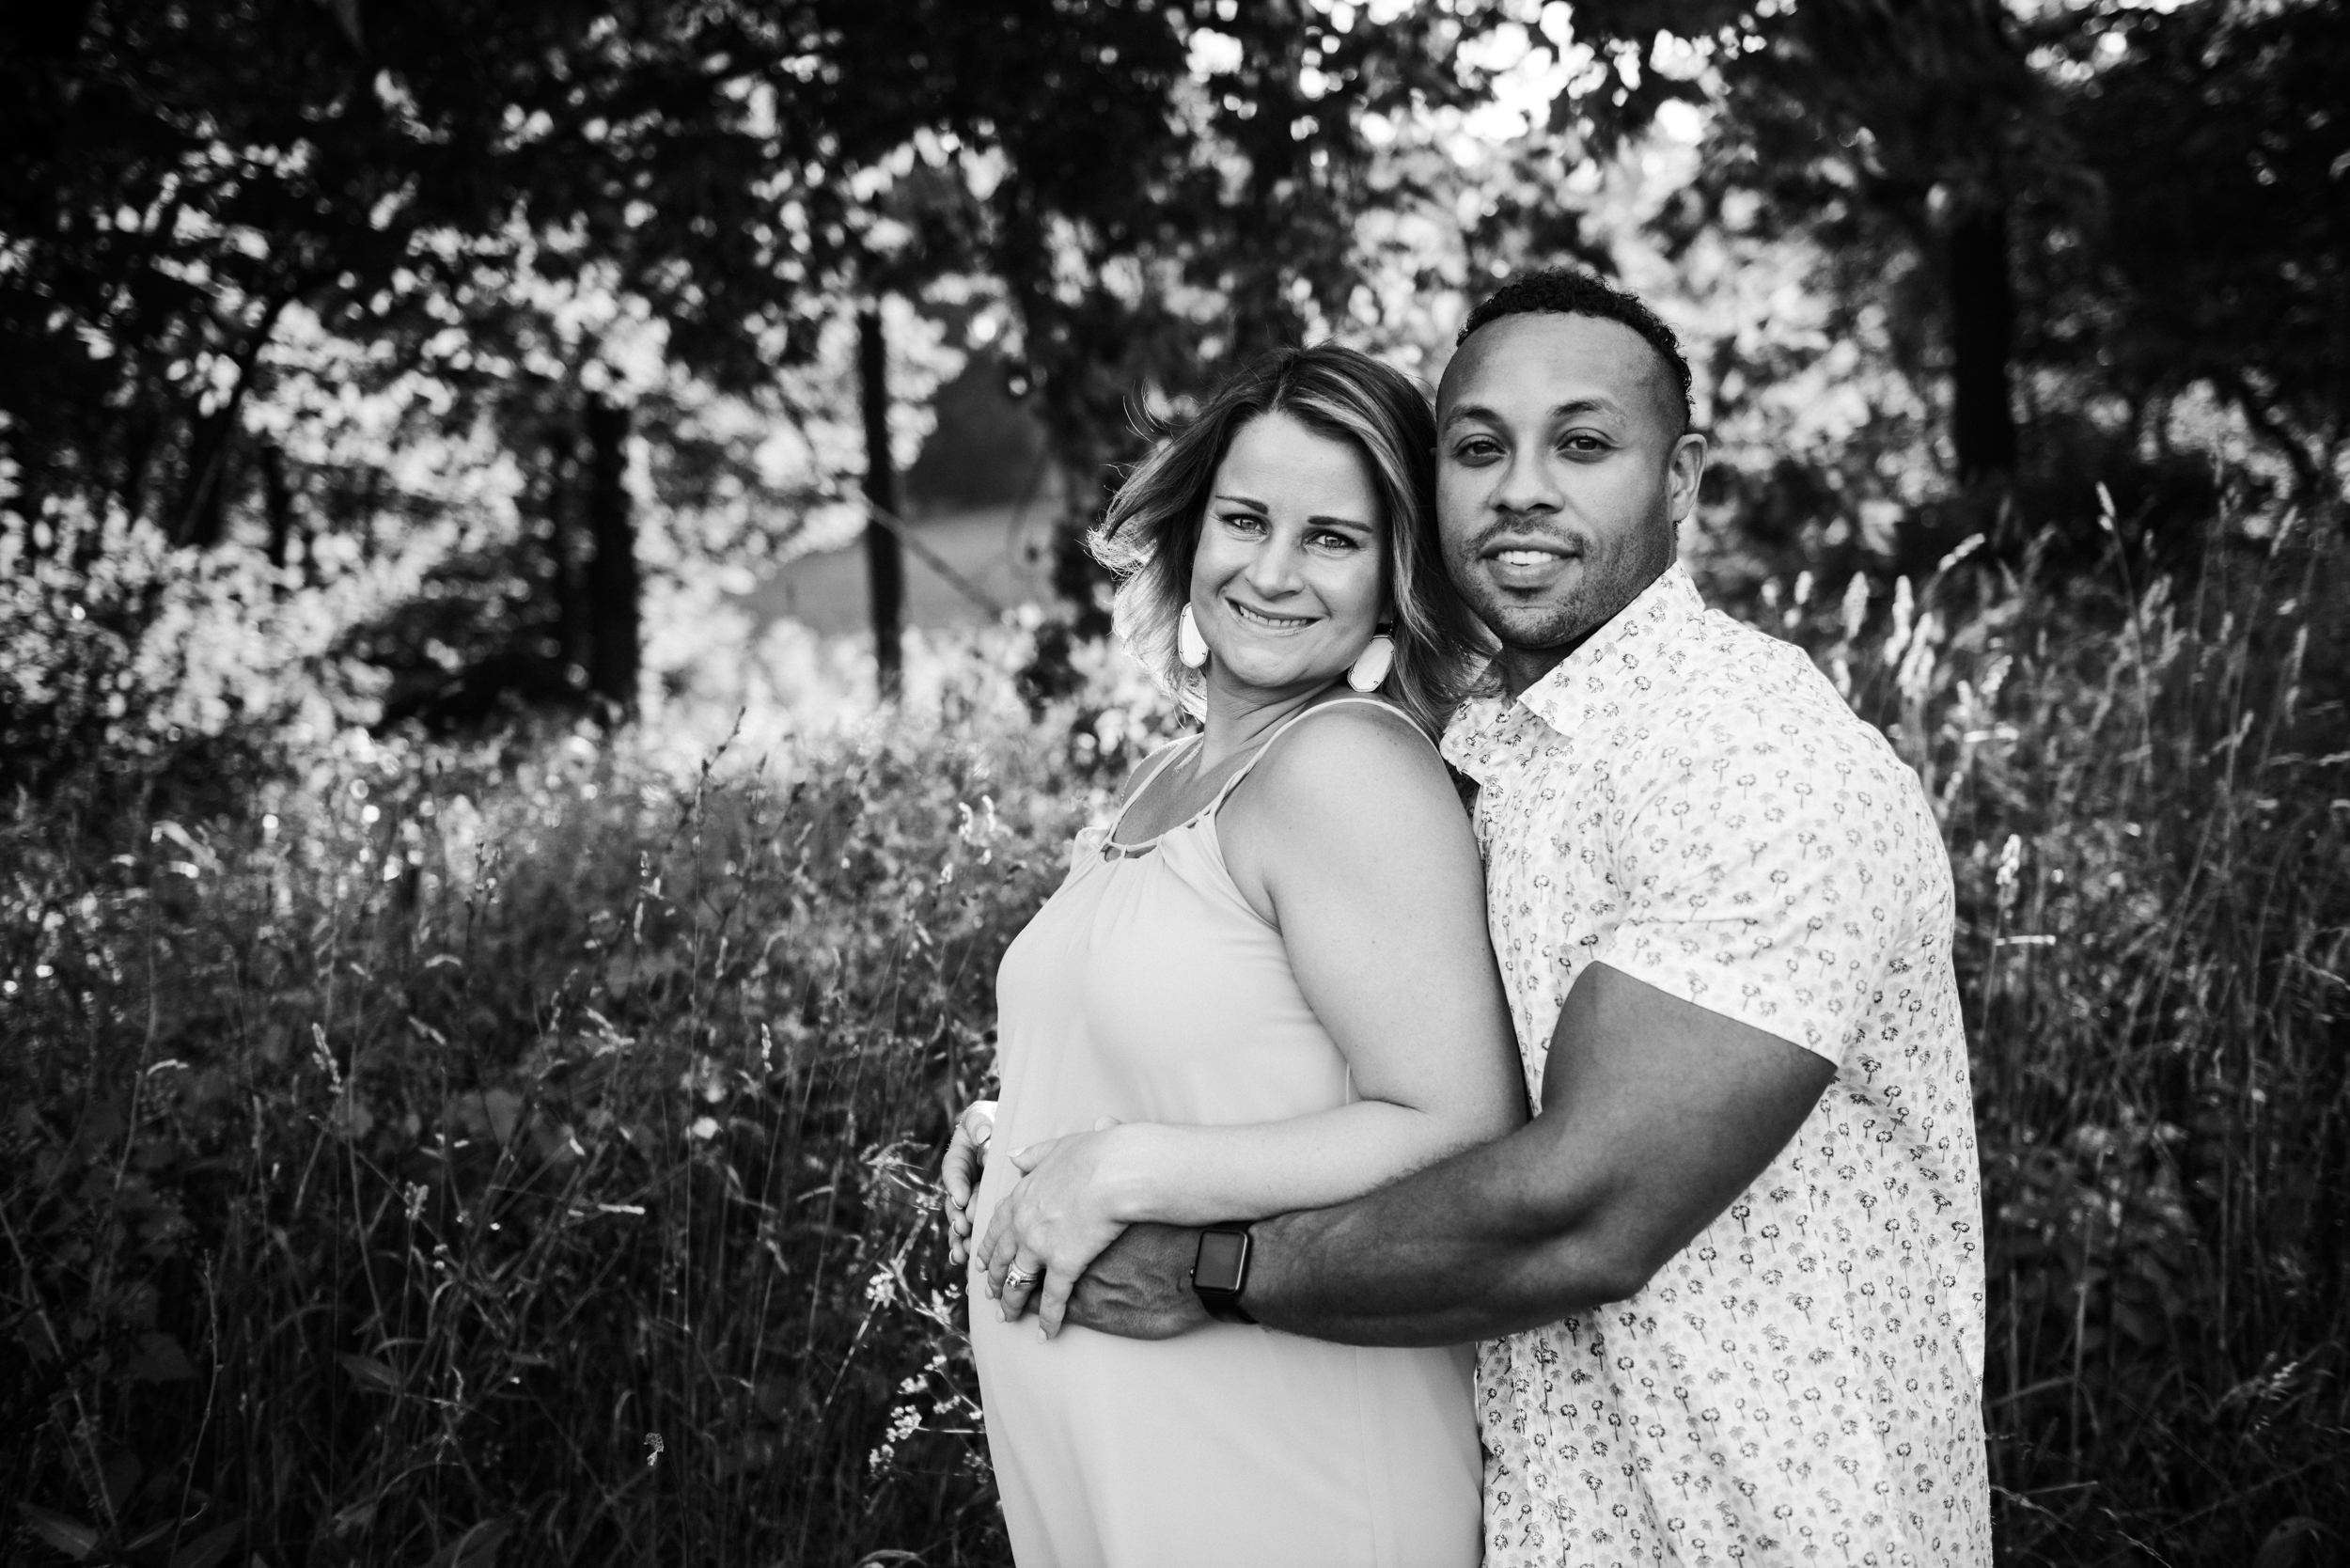 indianapolis-maternity-session-3.jpg